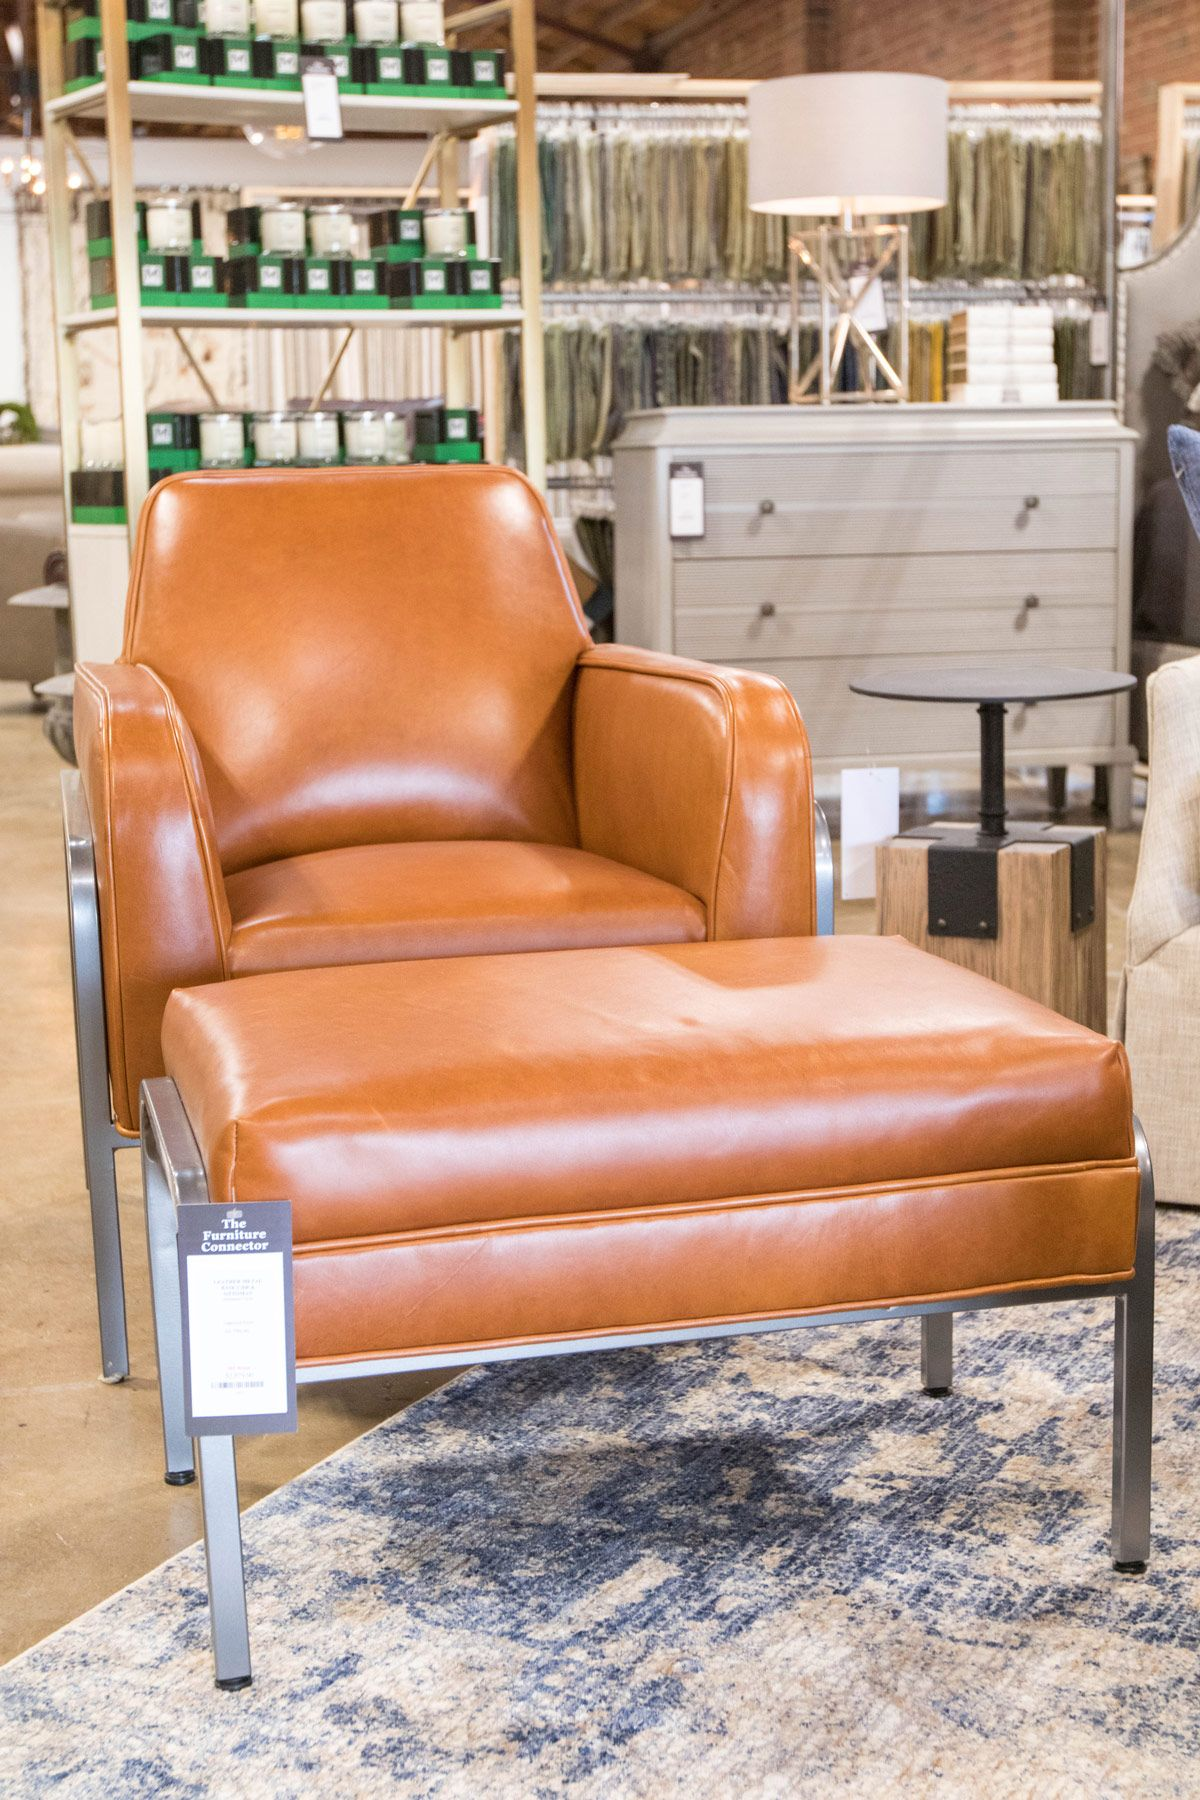 We Do A Home Shop At The Furniture Connector Furniture Home